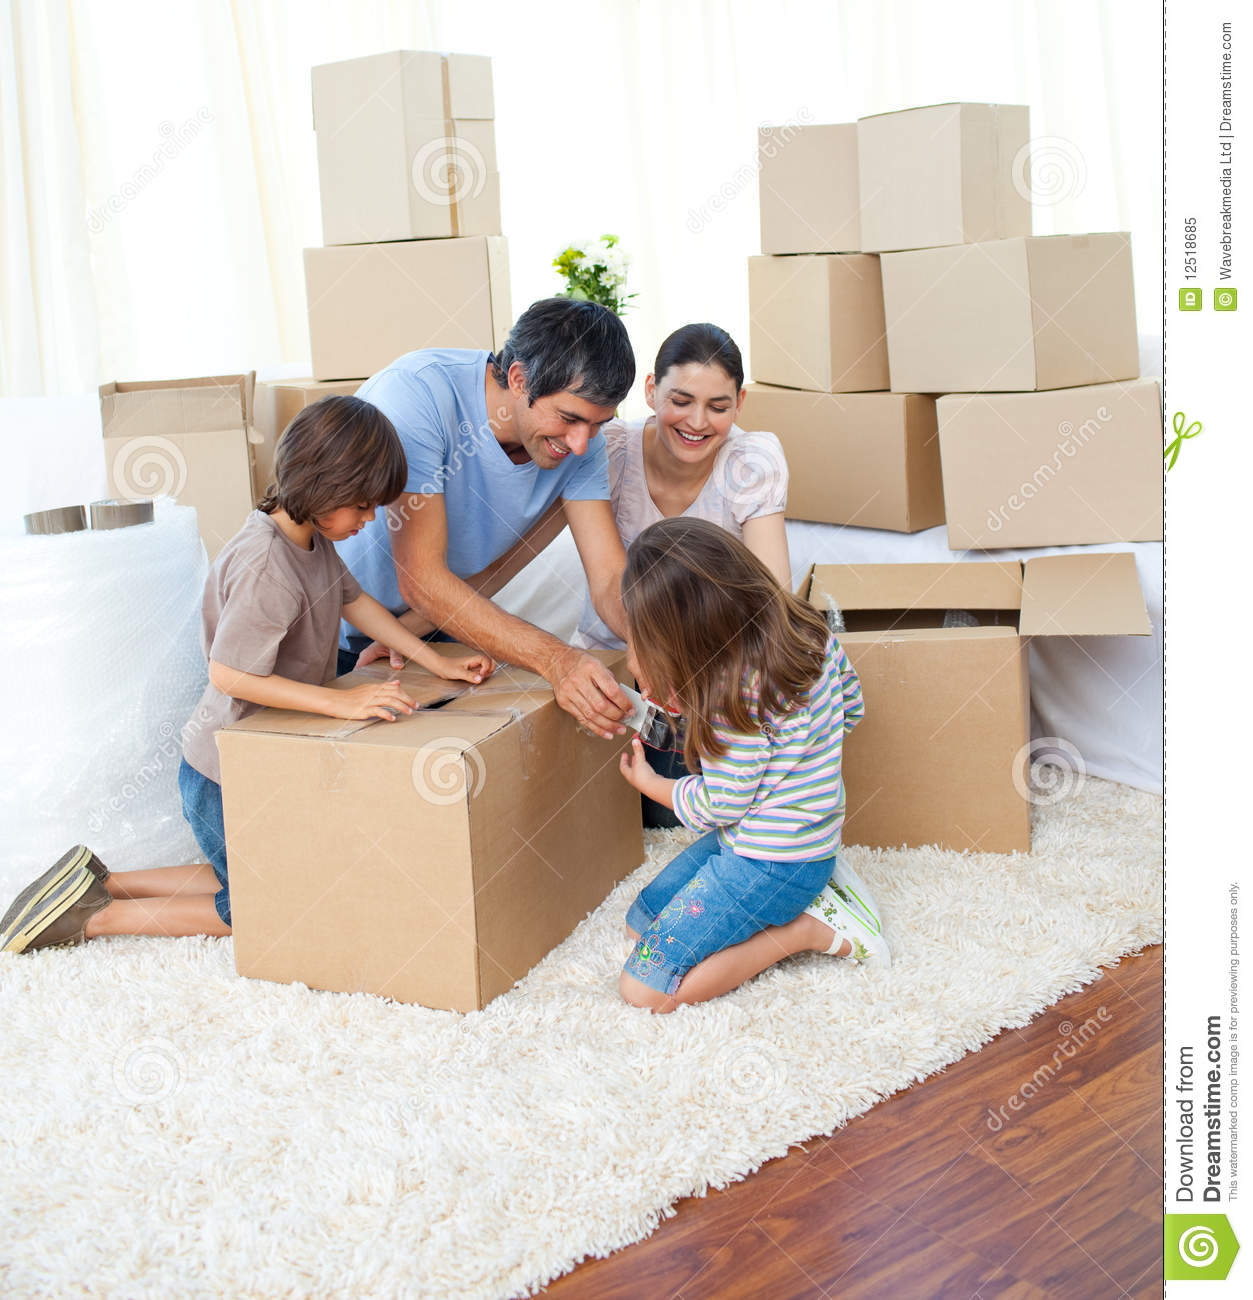 animated family packing boxes royalty free stock photo image 12518685. Black Bedroom Furniture Sets. Home Design Ideas